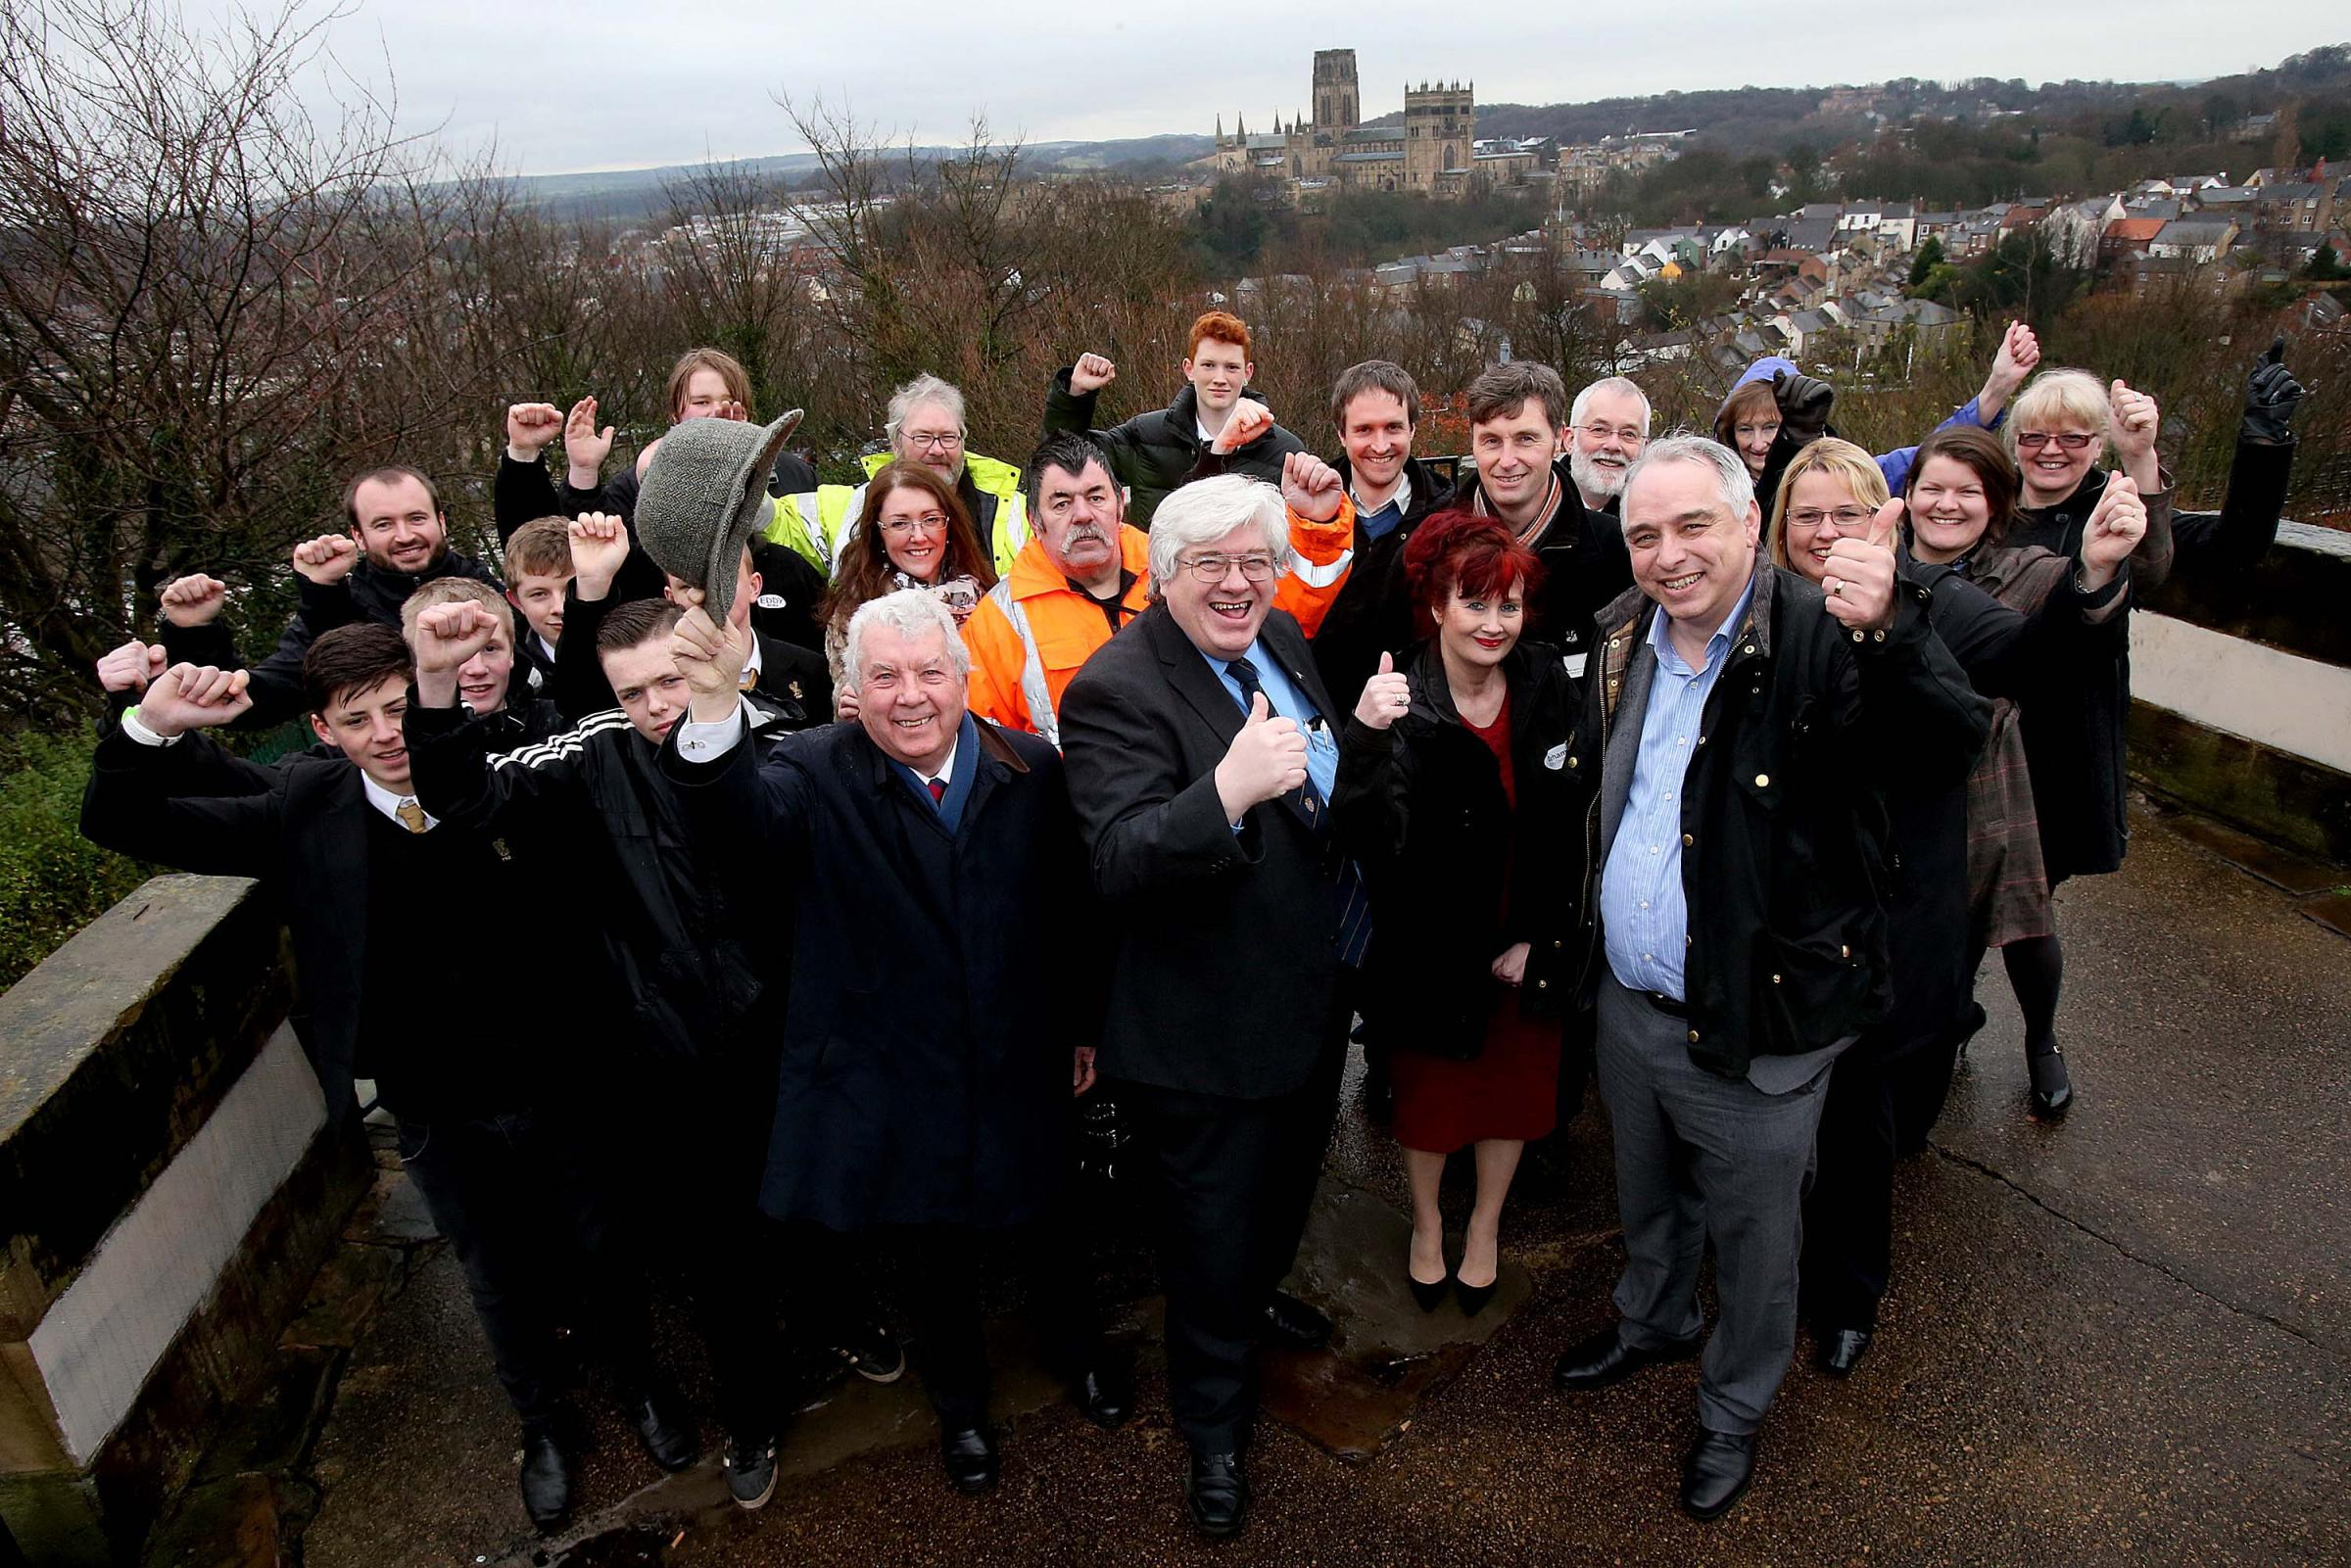 Thumbs up for Wharton Park revamp